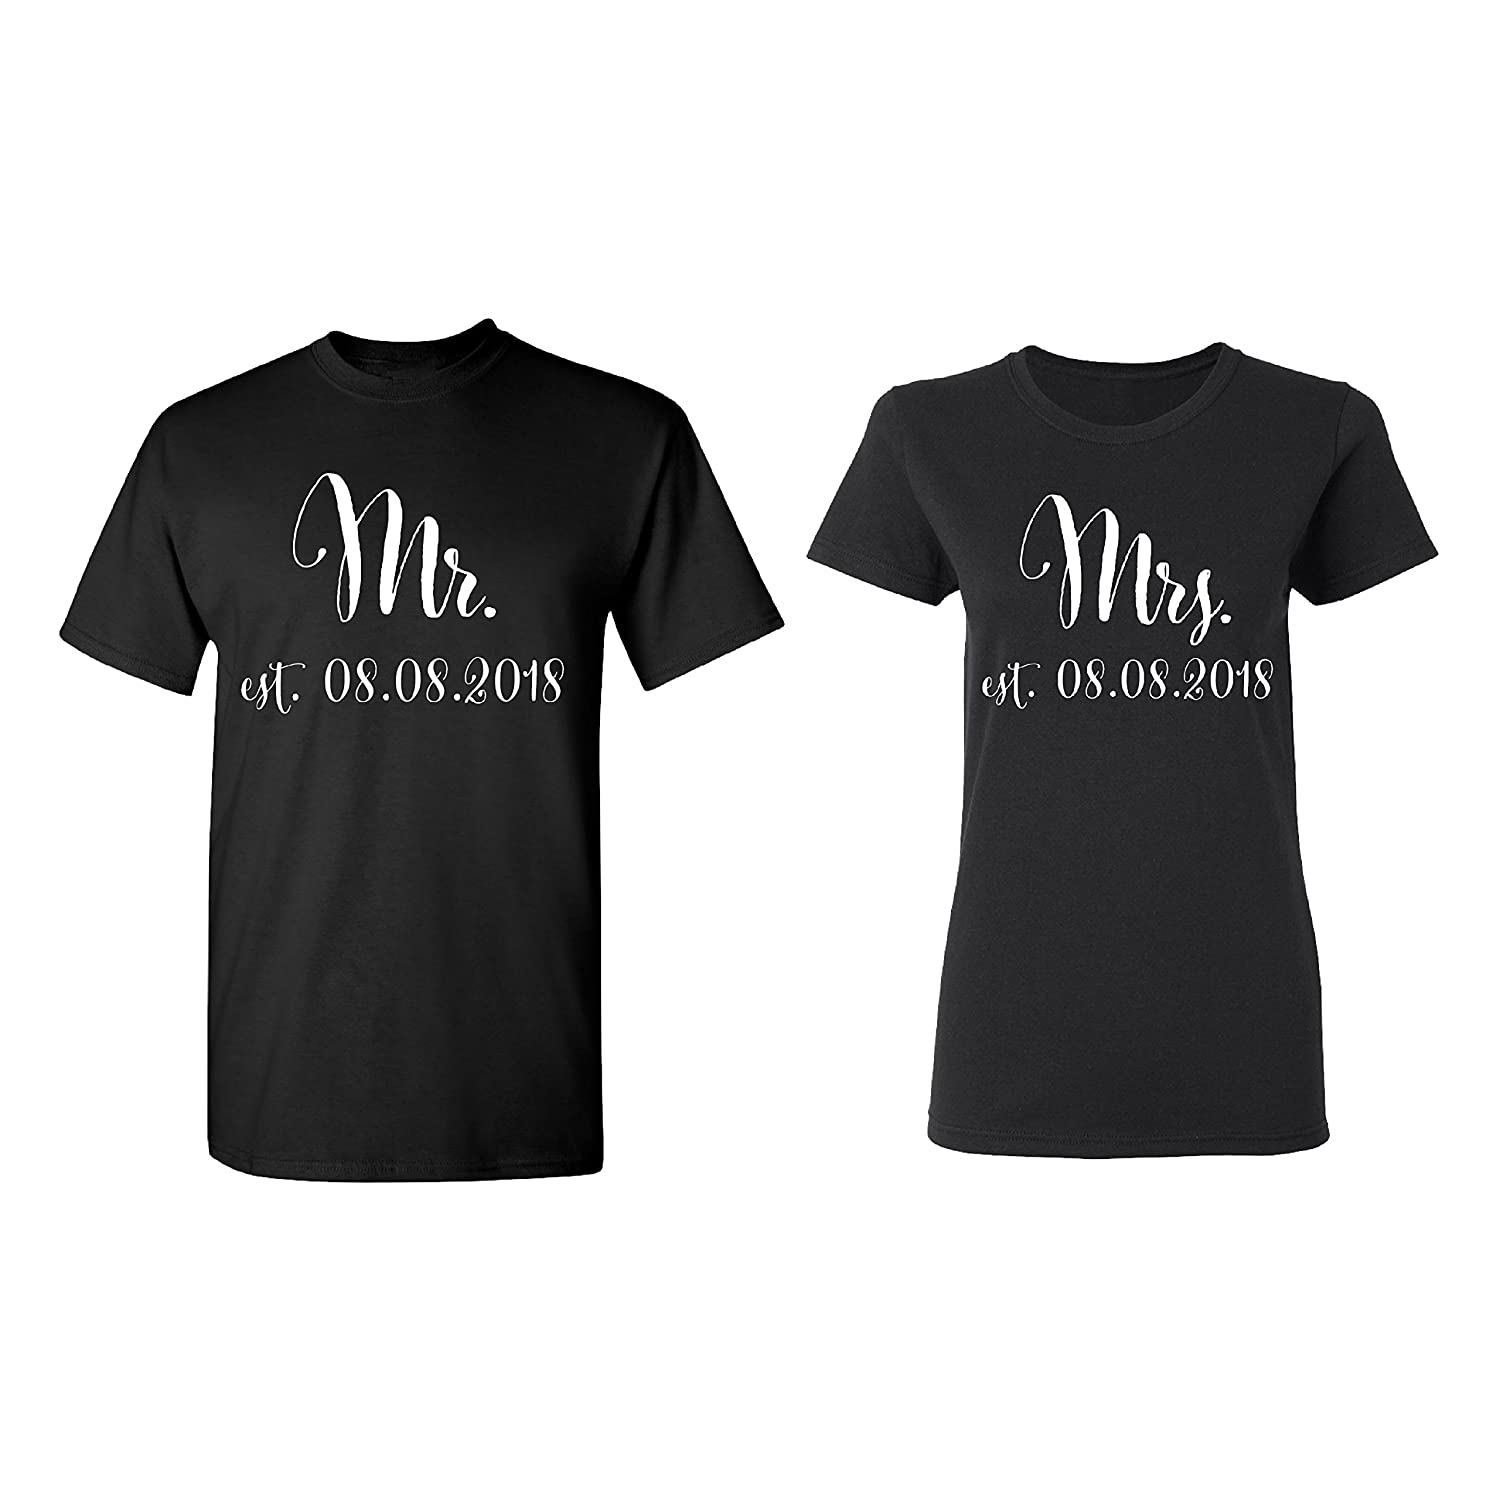 78e052f16 1 price for set of 2 t-shirts both shirts are standard American size.  Designed and printed in California, United States These personalized cute  couple ...